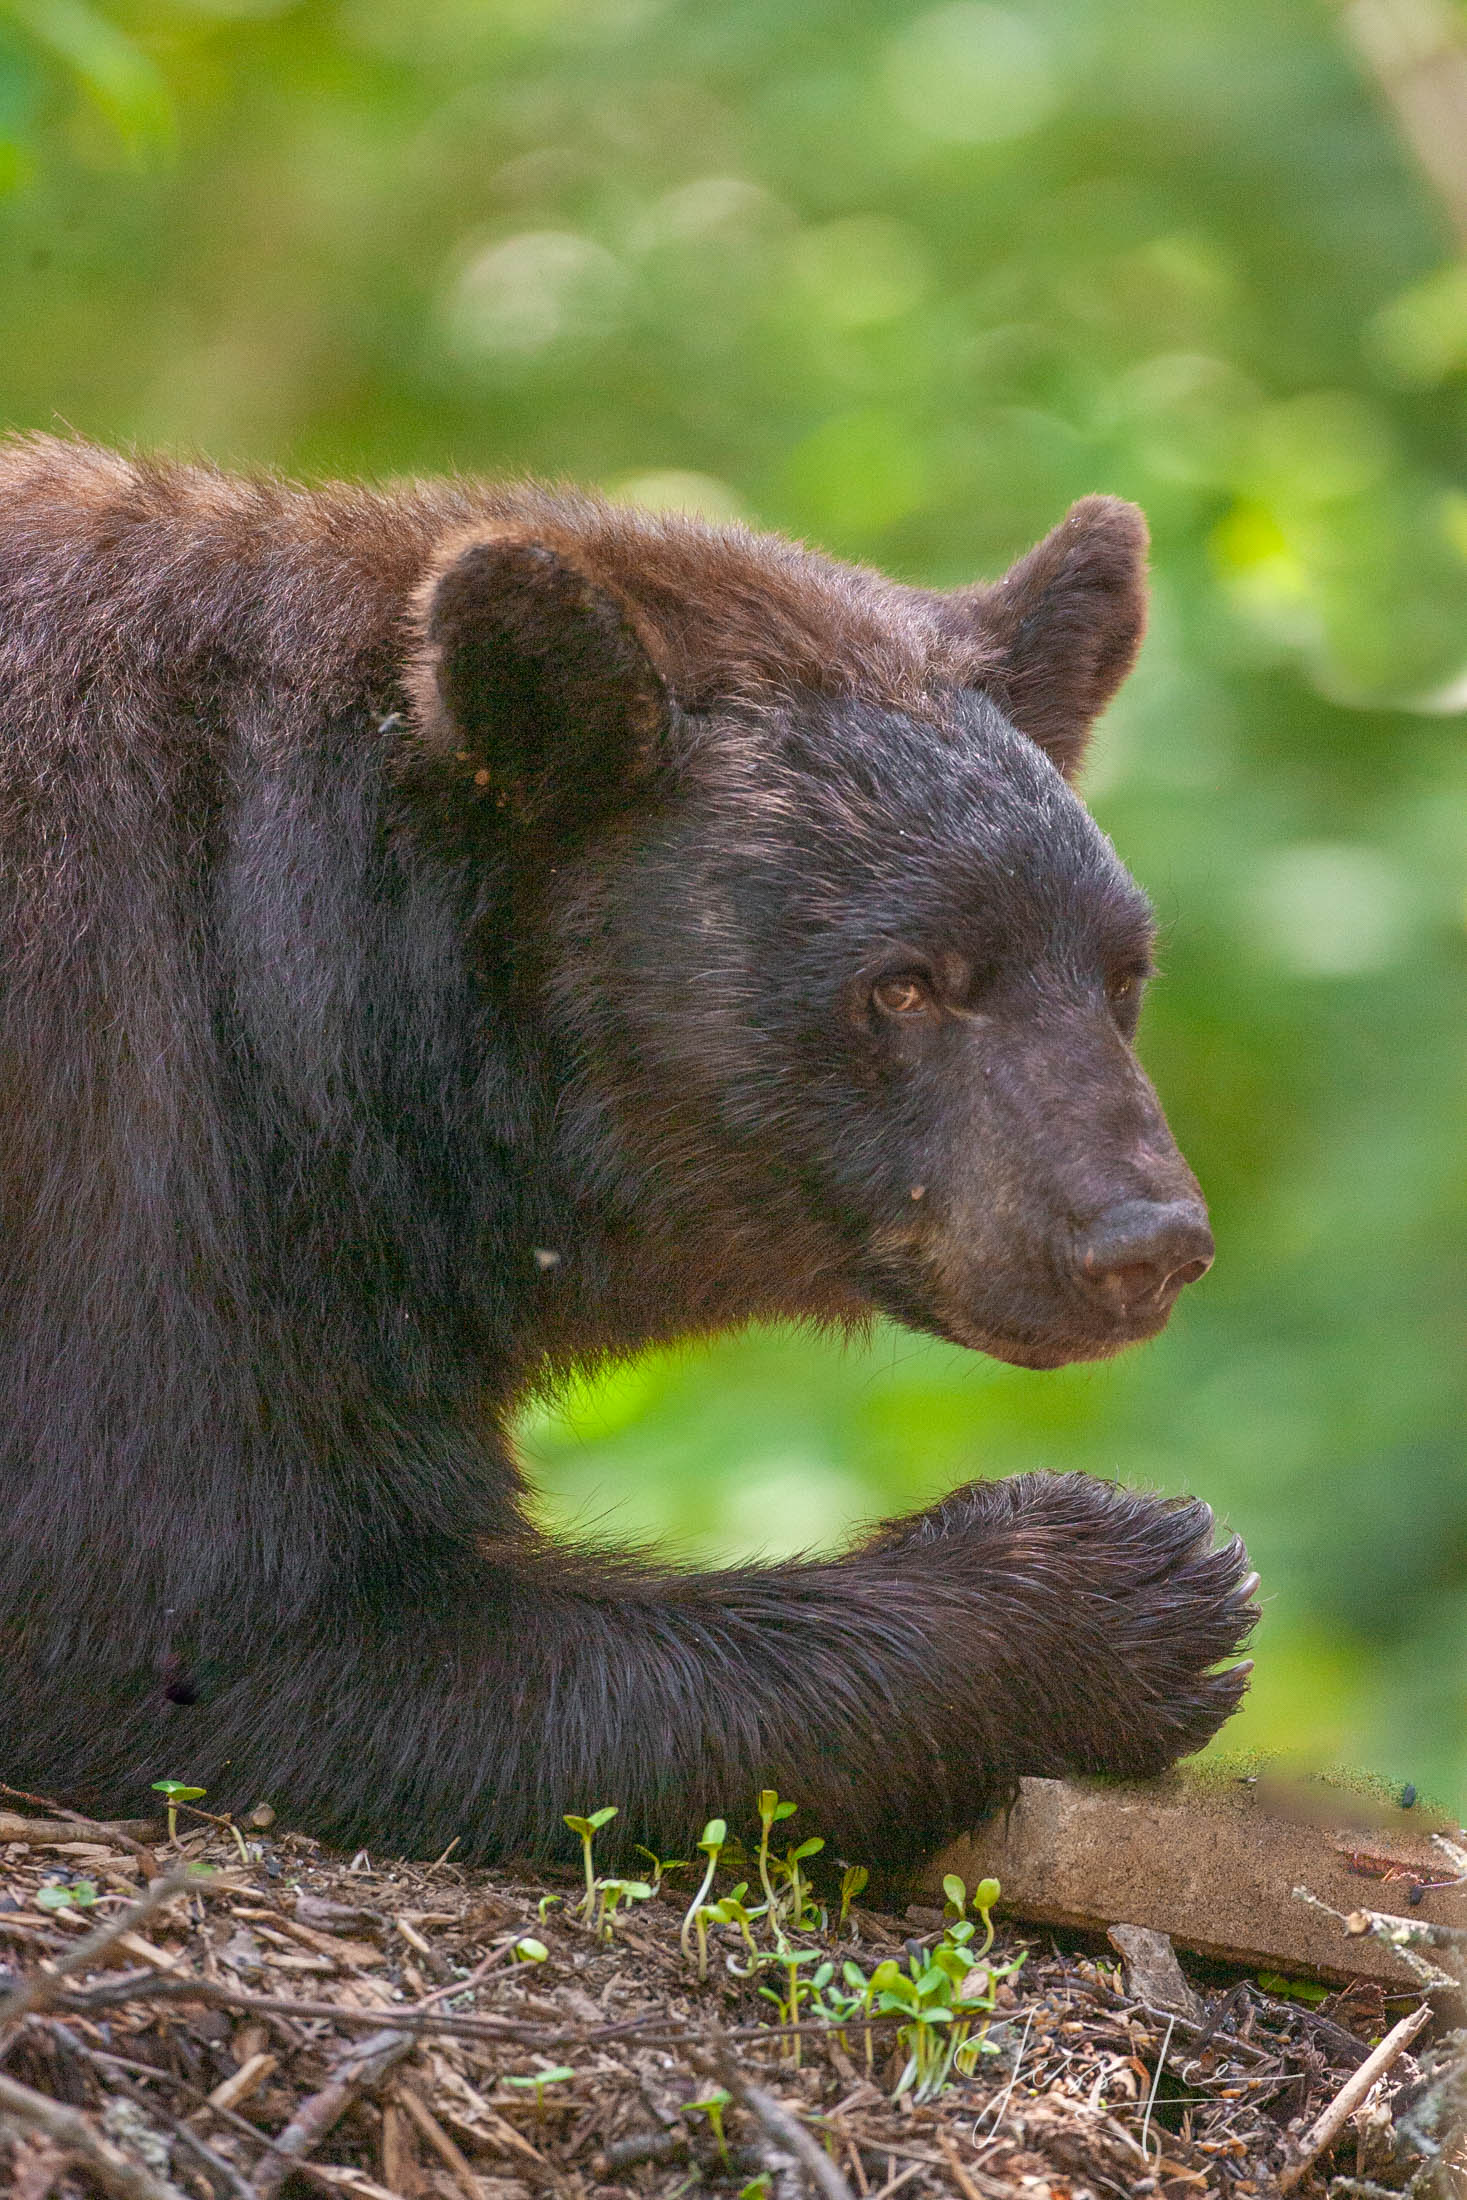 Black Bear 7-1 eating Photo  Limited Edition of 100 prints These bear photographs are offered as high-quality prints for sale...